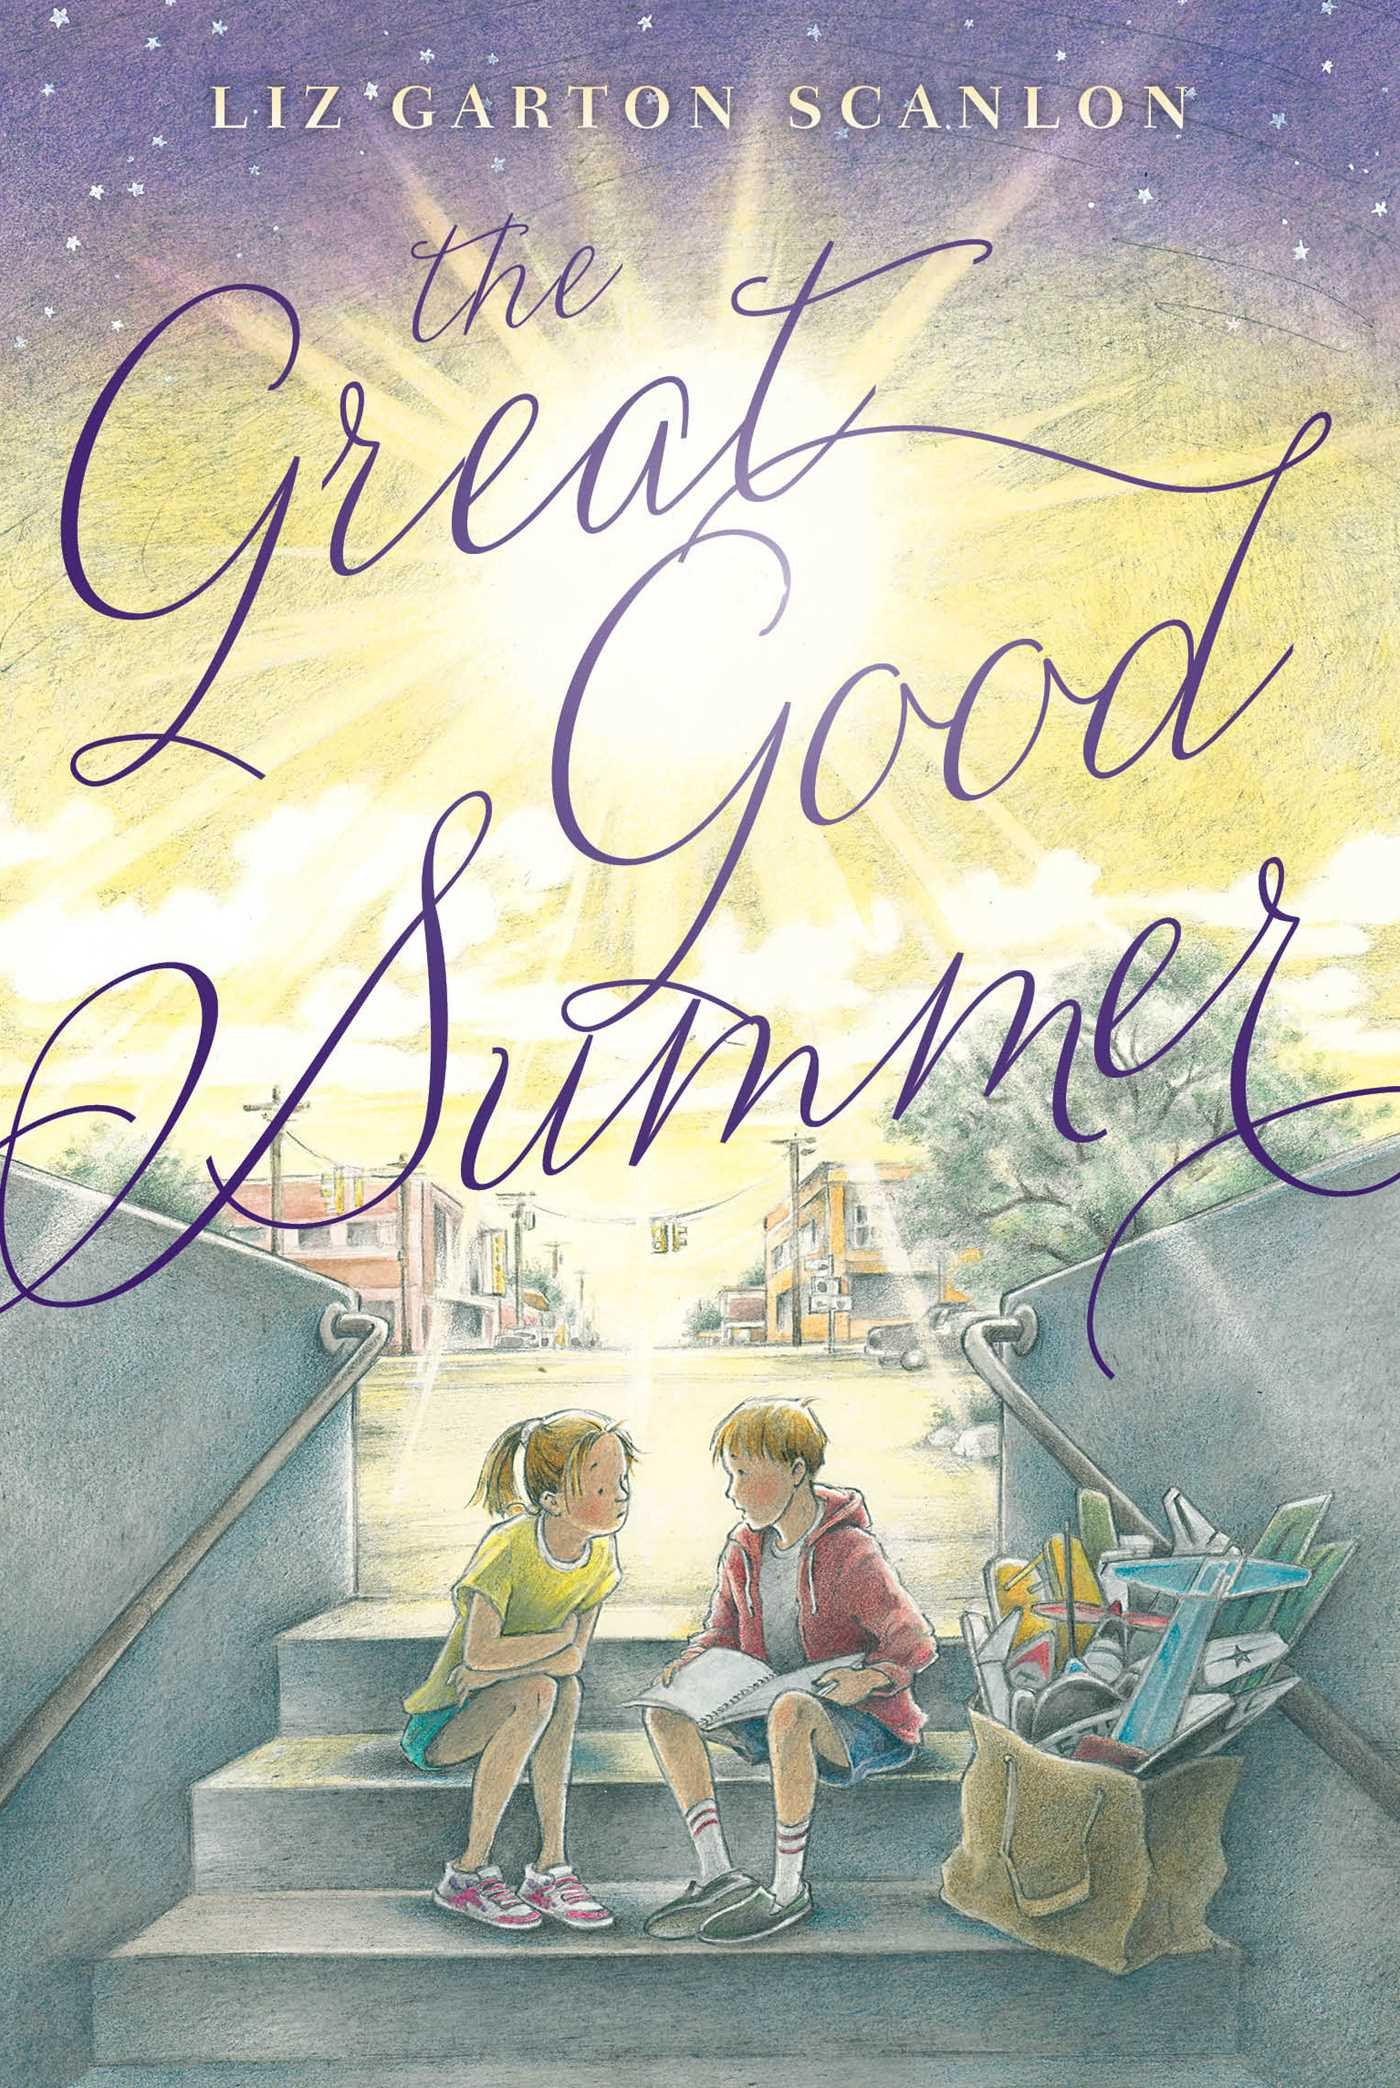 Review of winn dixie free appliances - The Great Good Summer Liz Garton Scanlon 9781481411486 Amazon Com Books